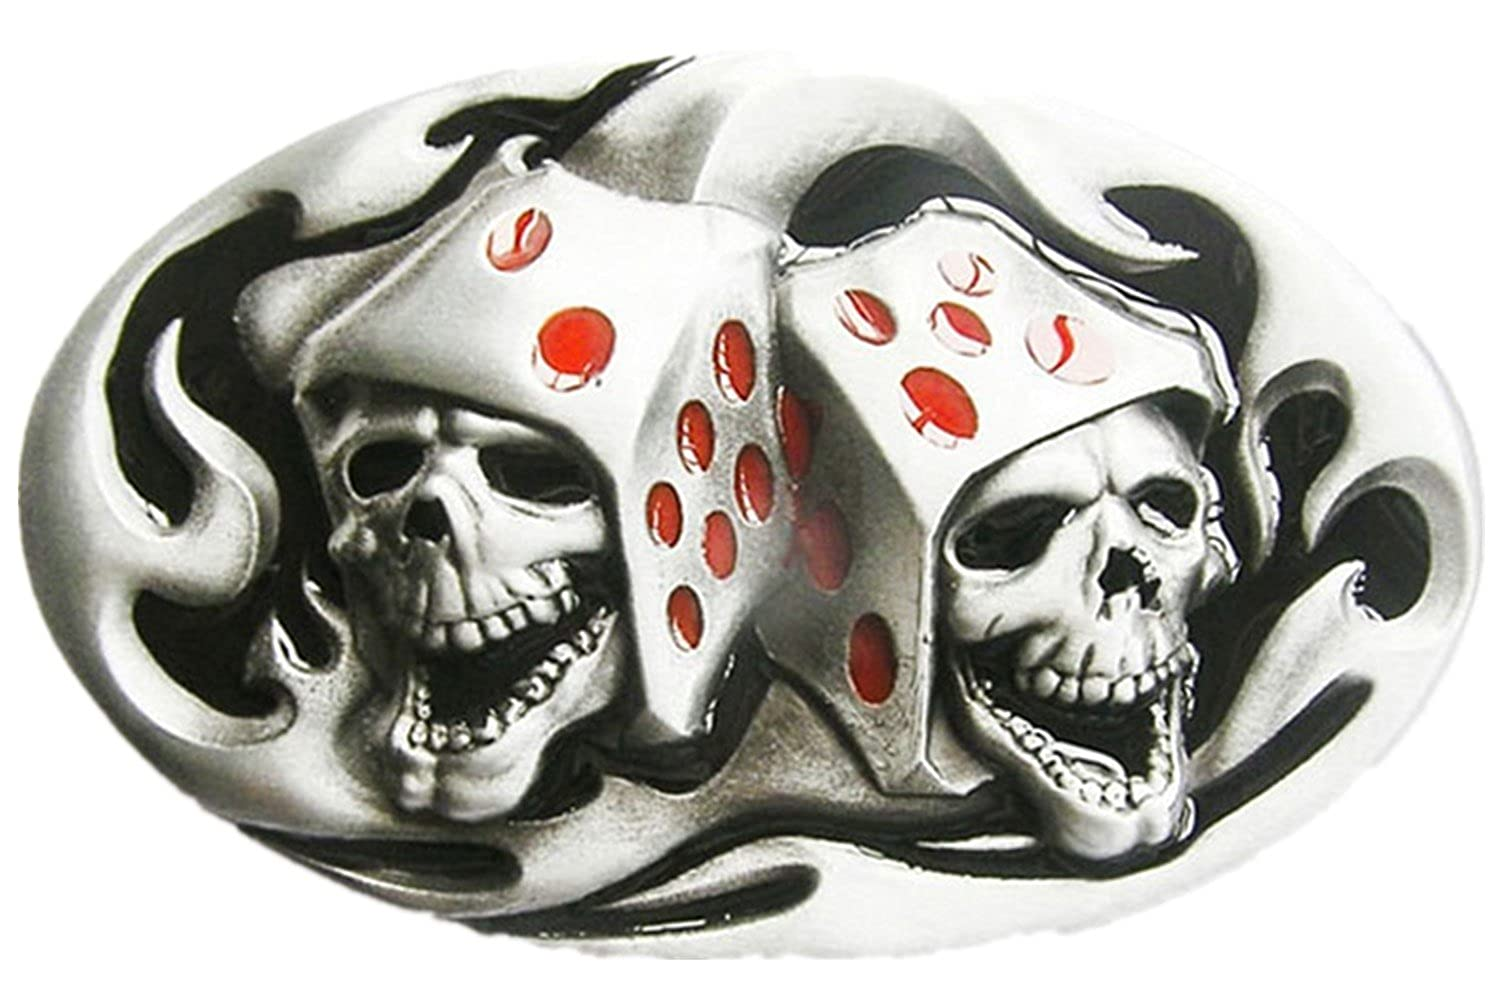 Original Tattoo Skull Dice Casino Gamble Oval Belt Buckle